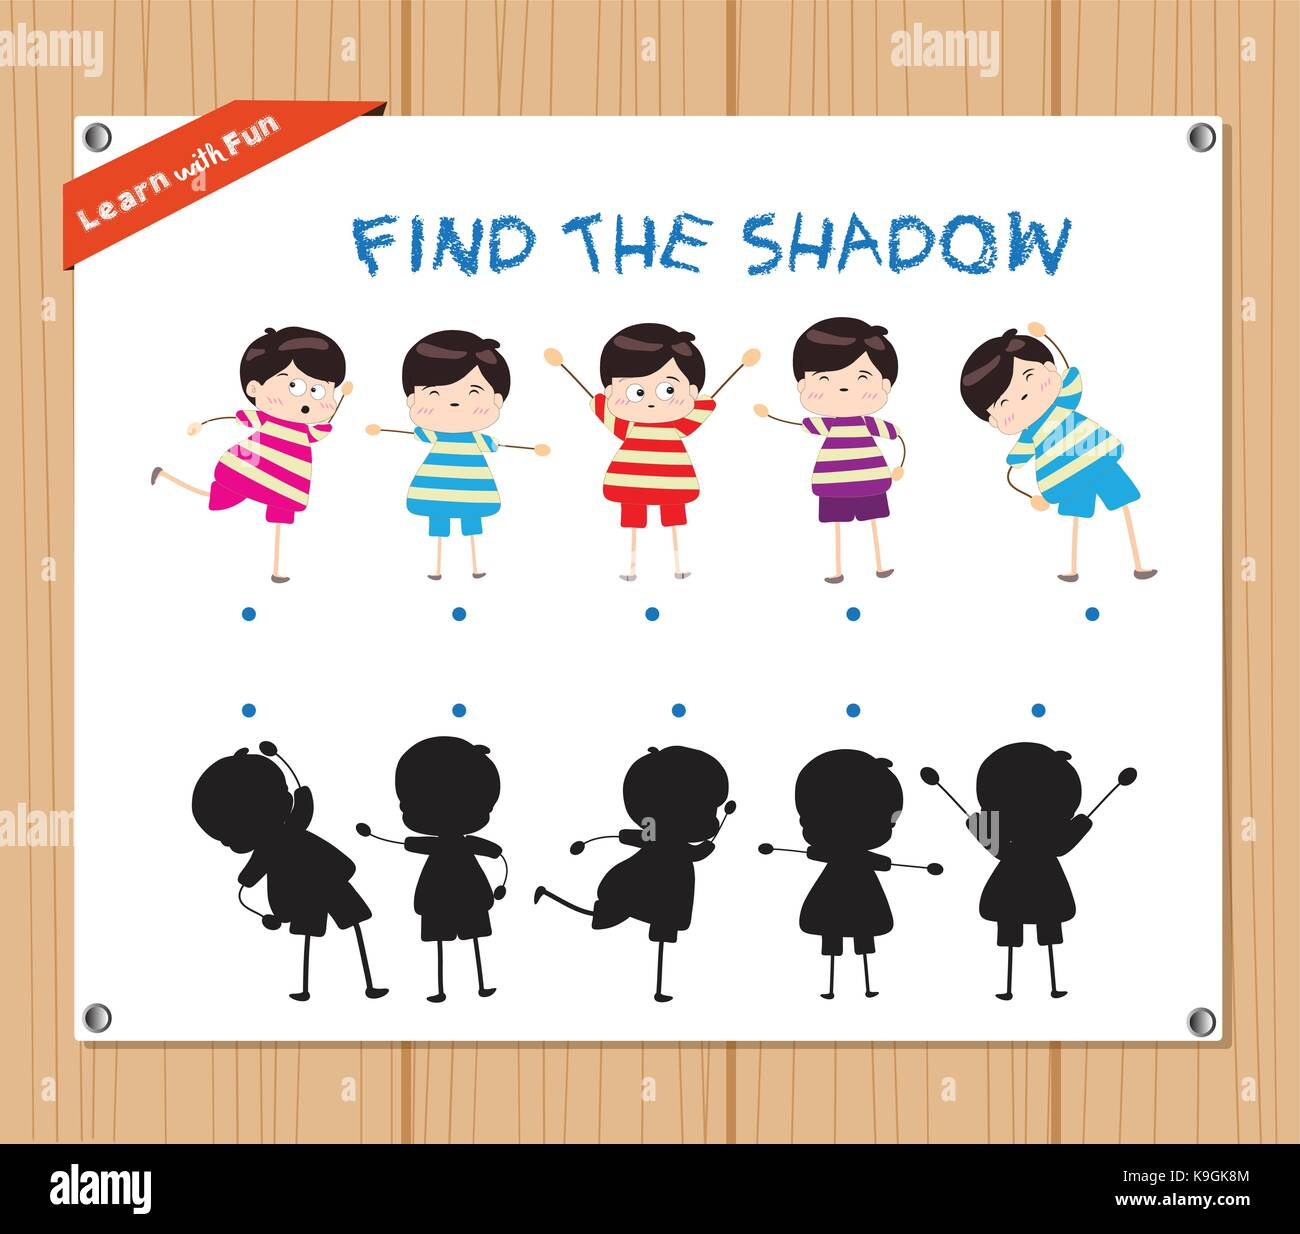 Find The Shadow Educational Activity Task For Preschool